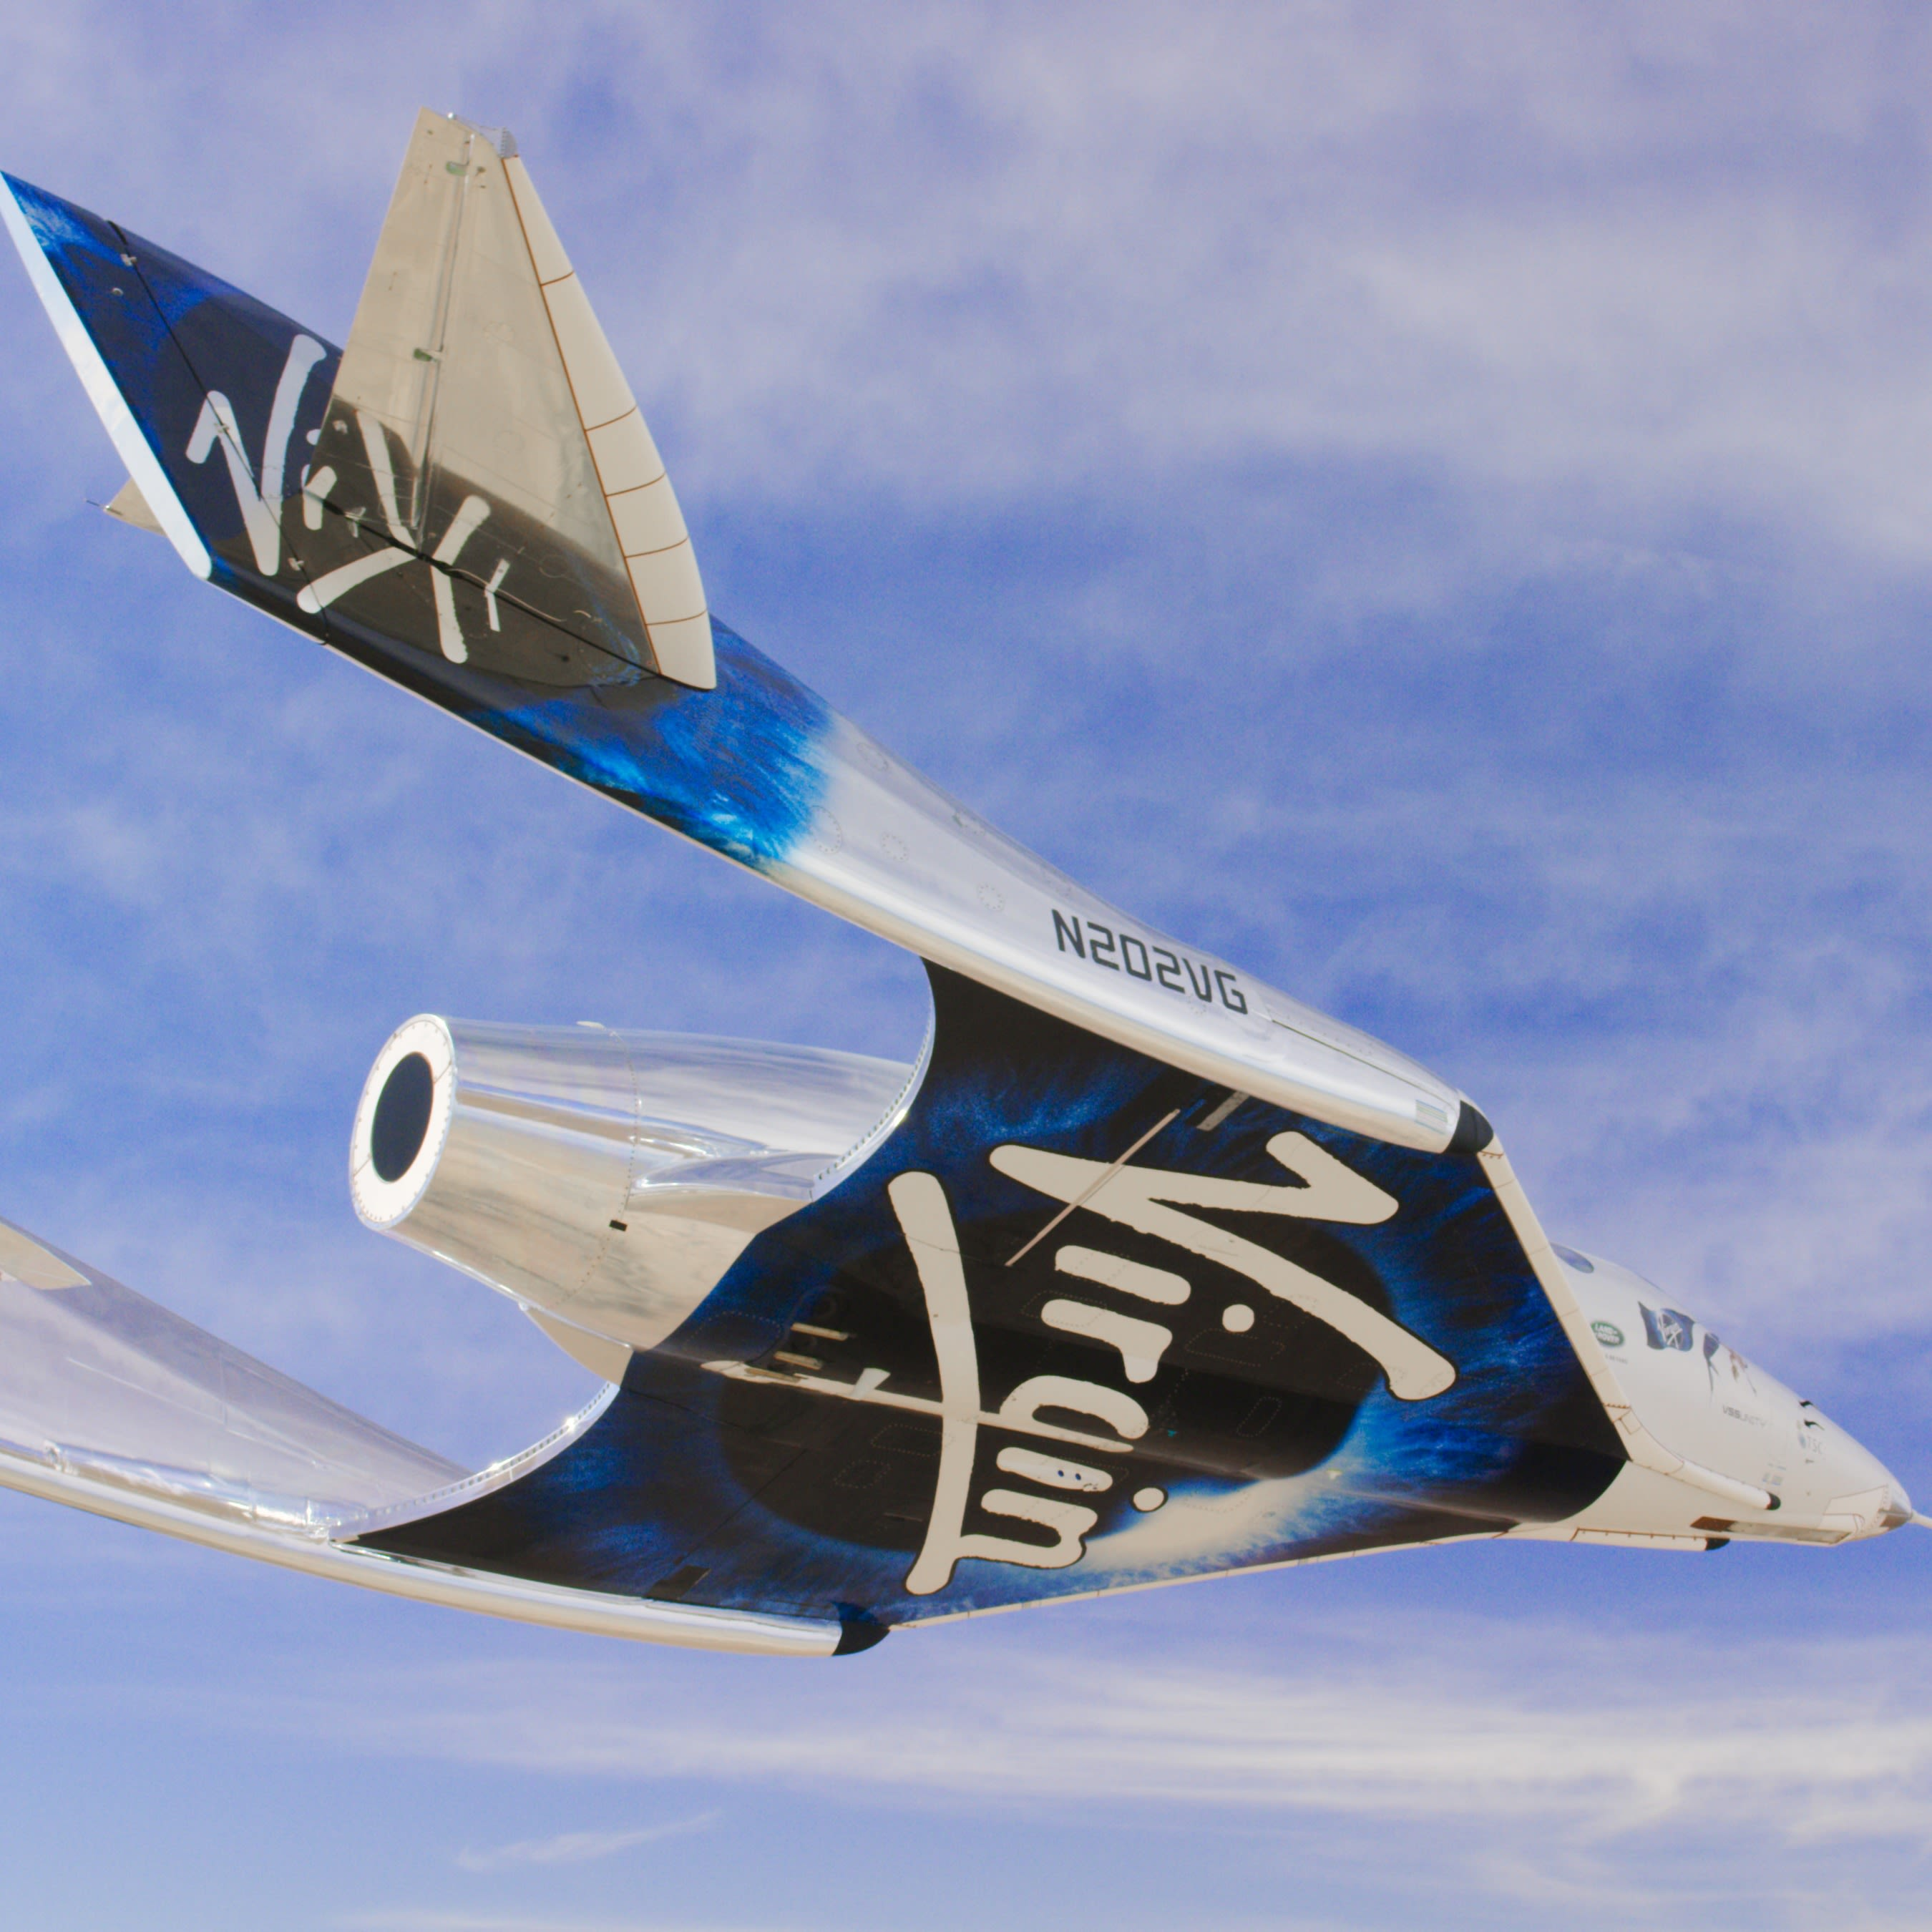 Image from Virgin Galactic